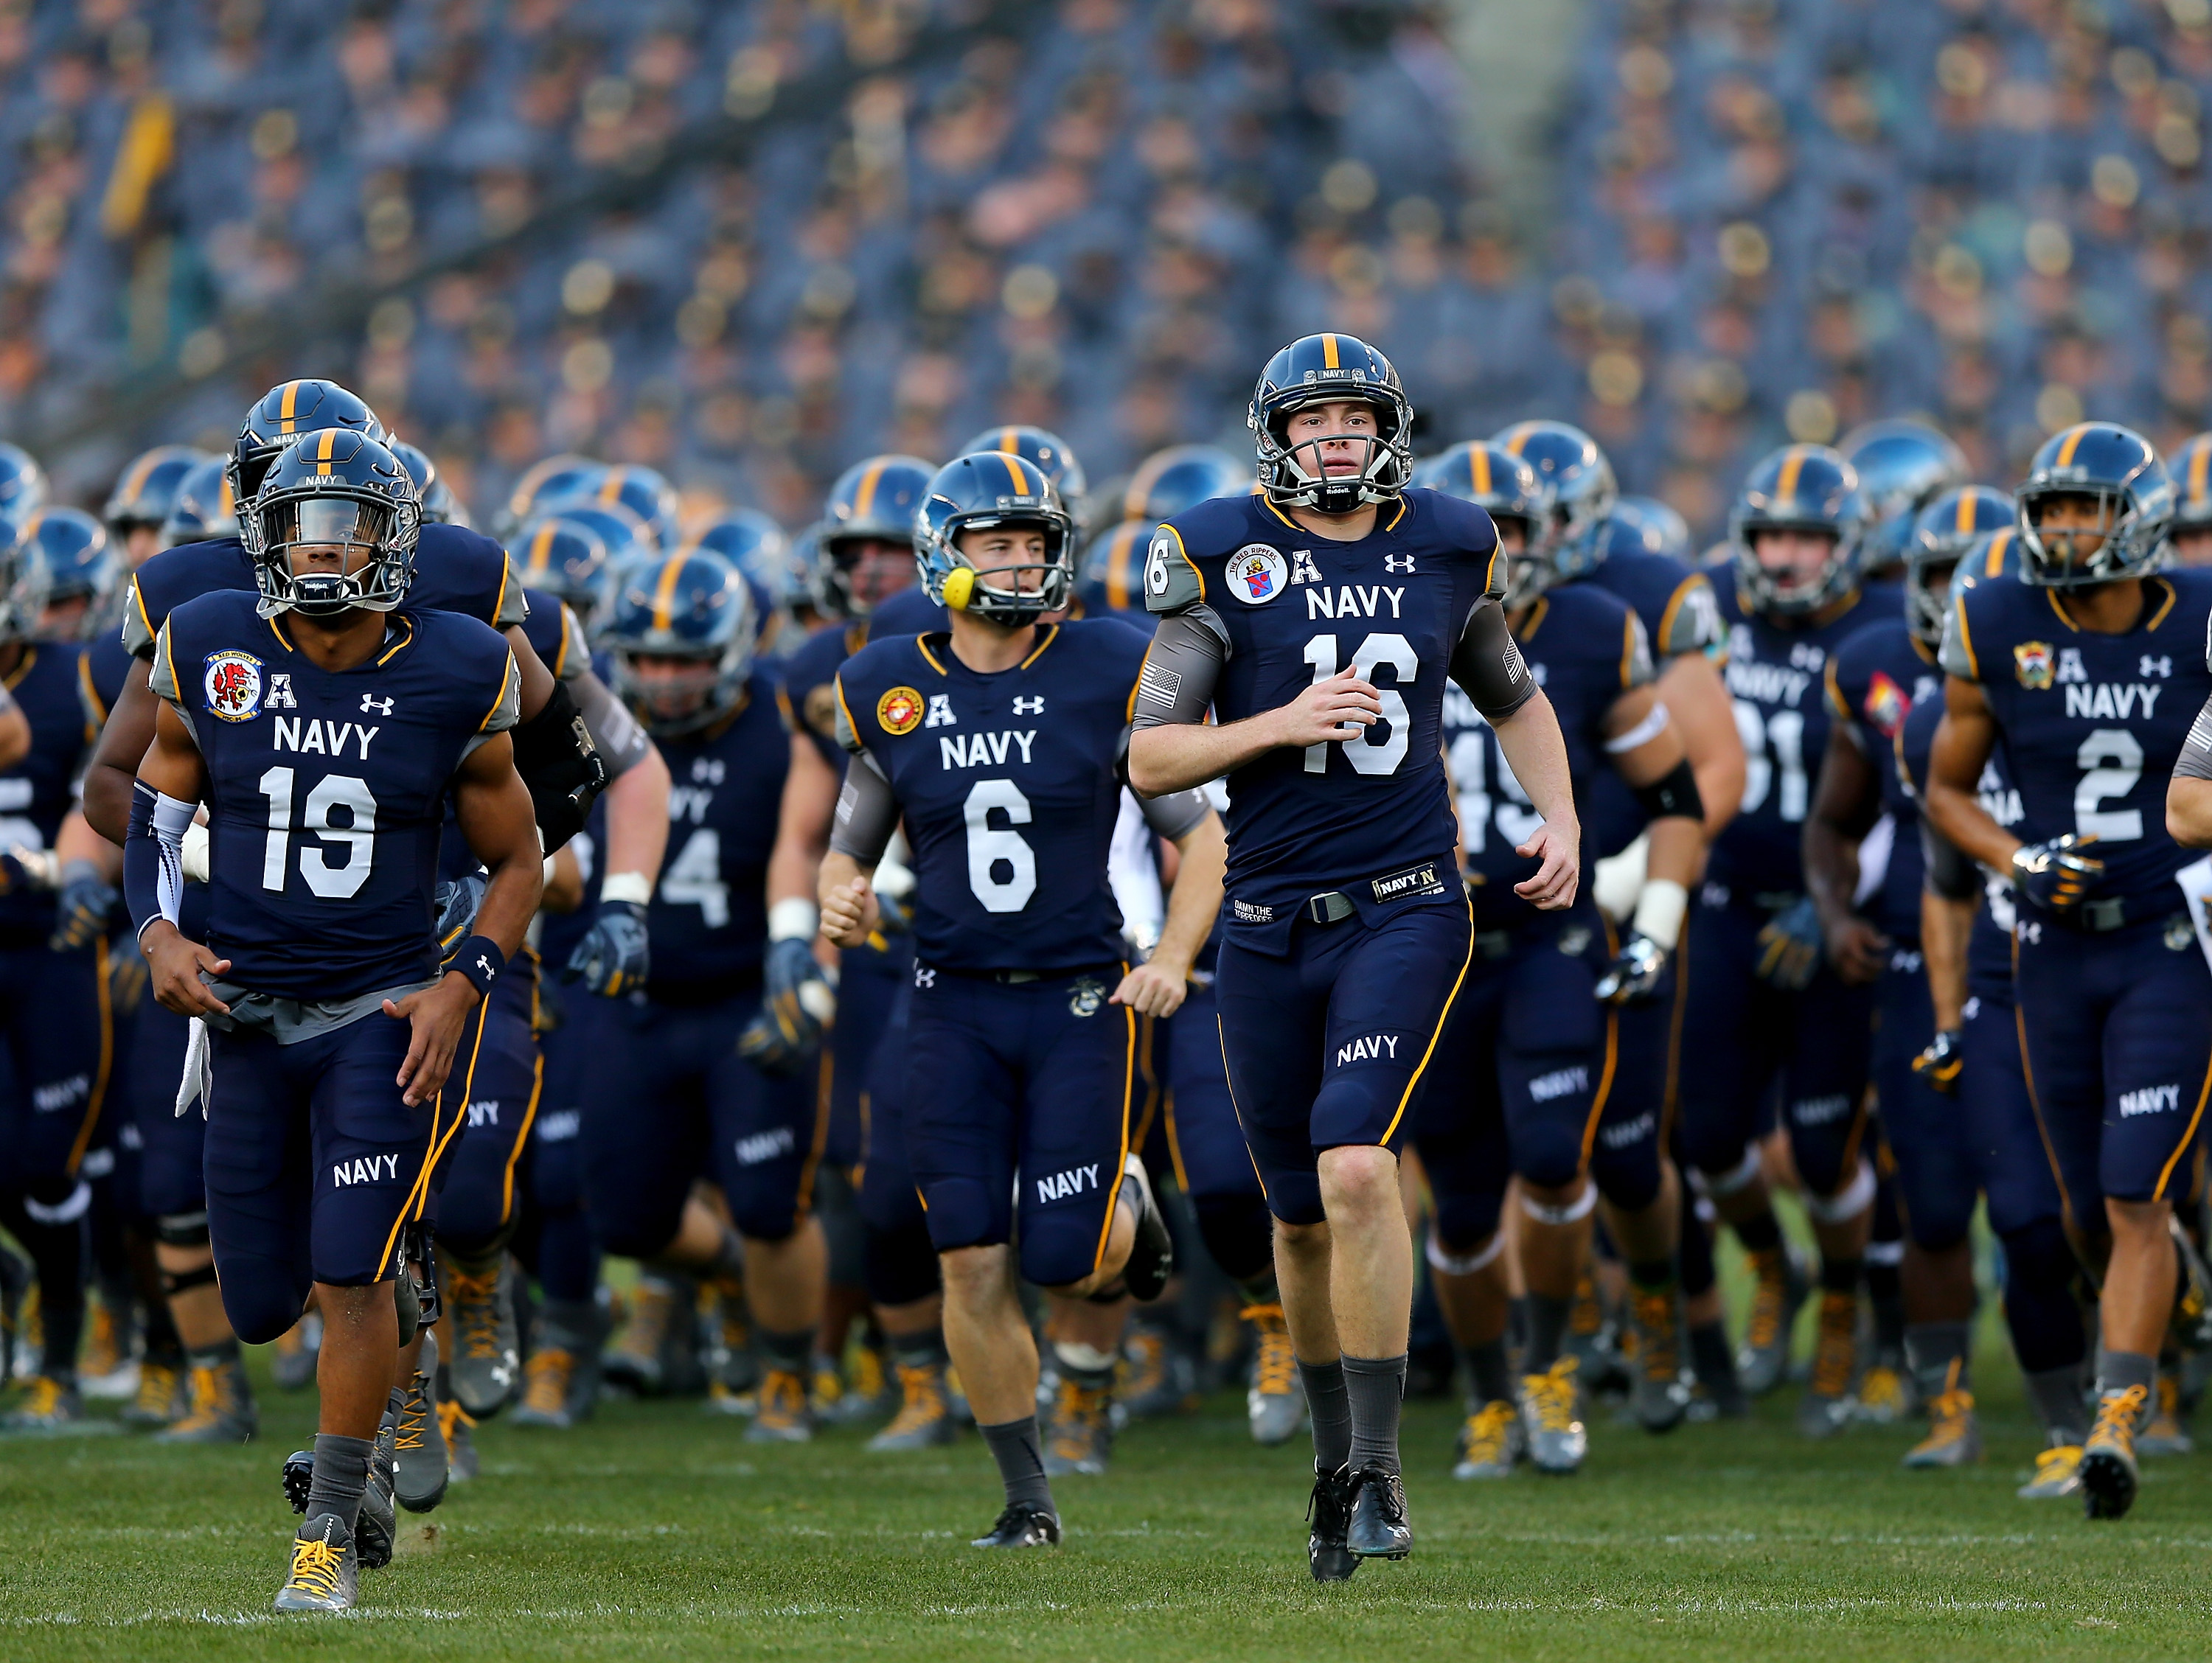 Army-Navy Football  What the game means to the students - Against All  Enemies f5f99d8de122